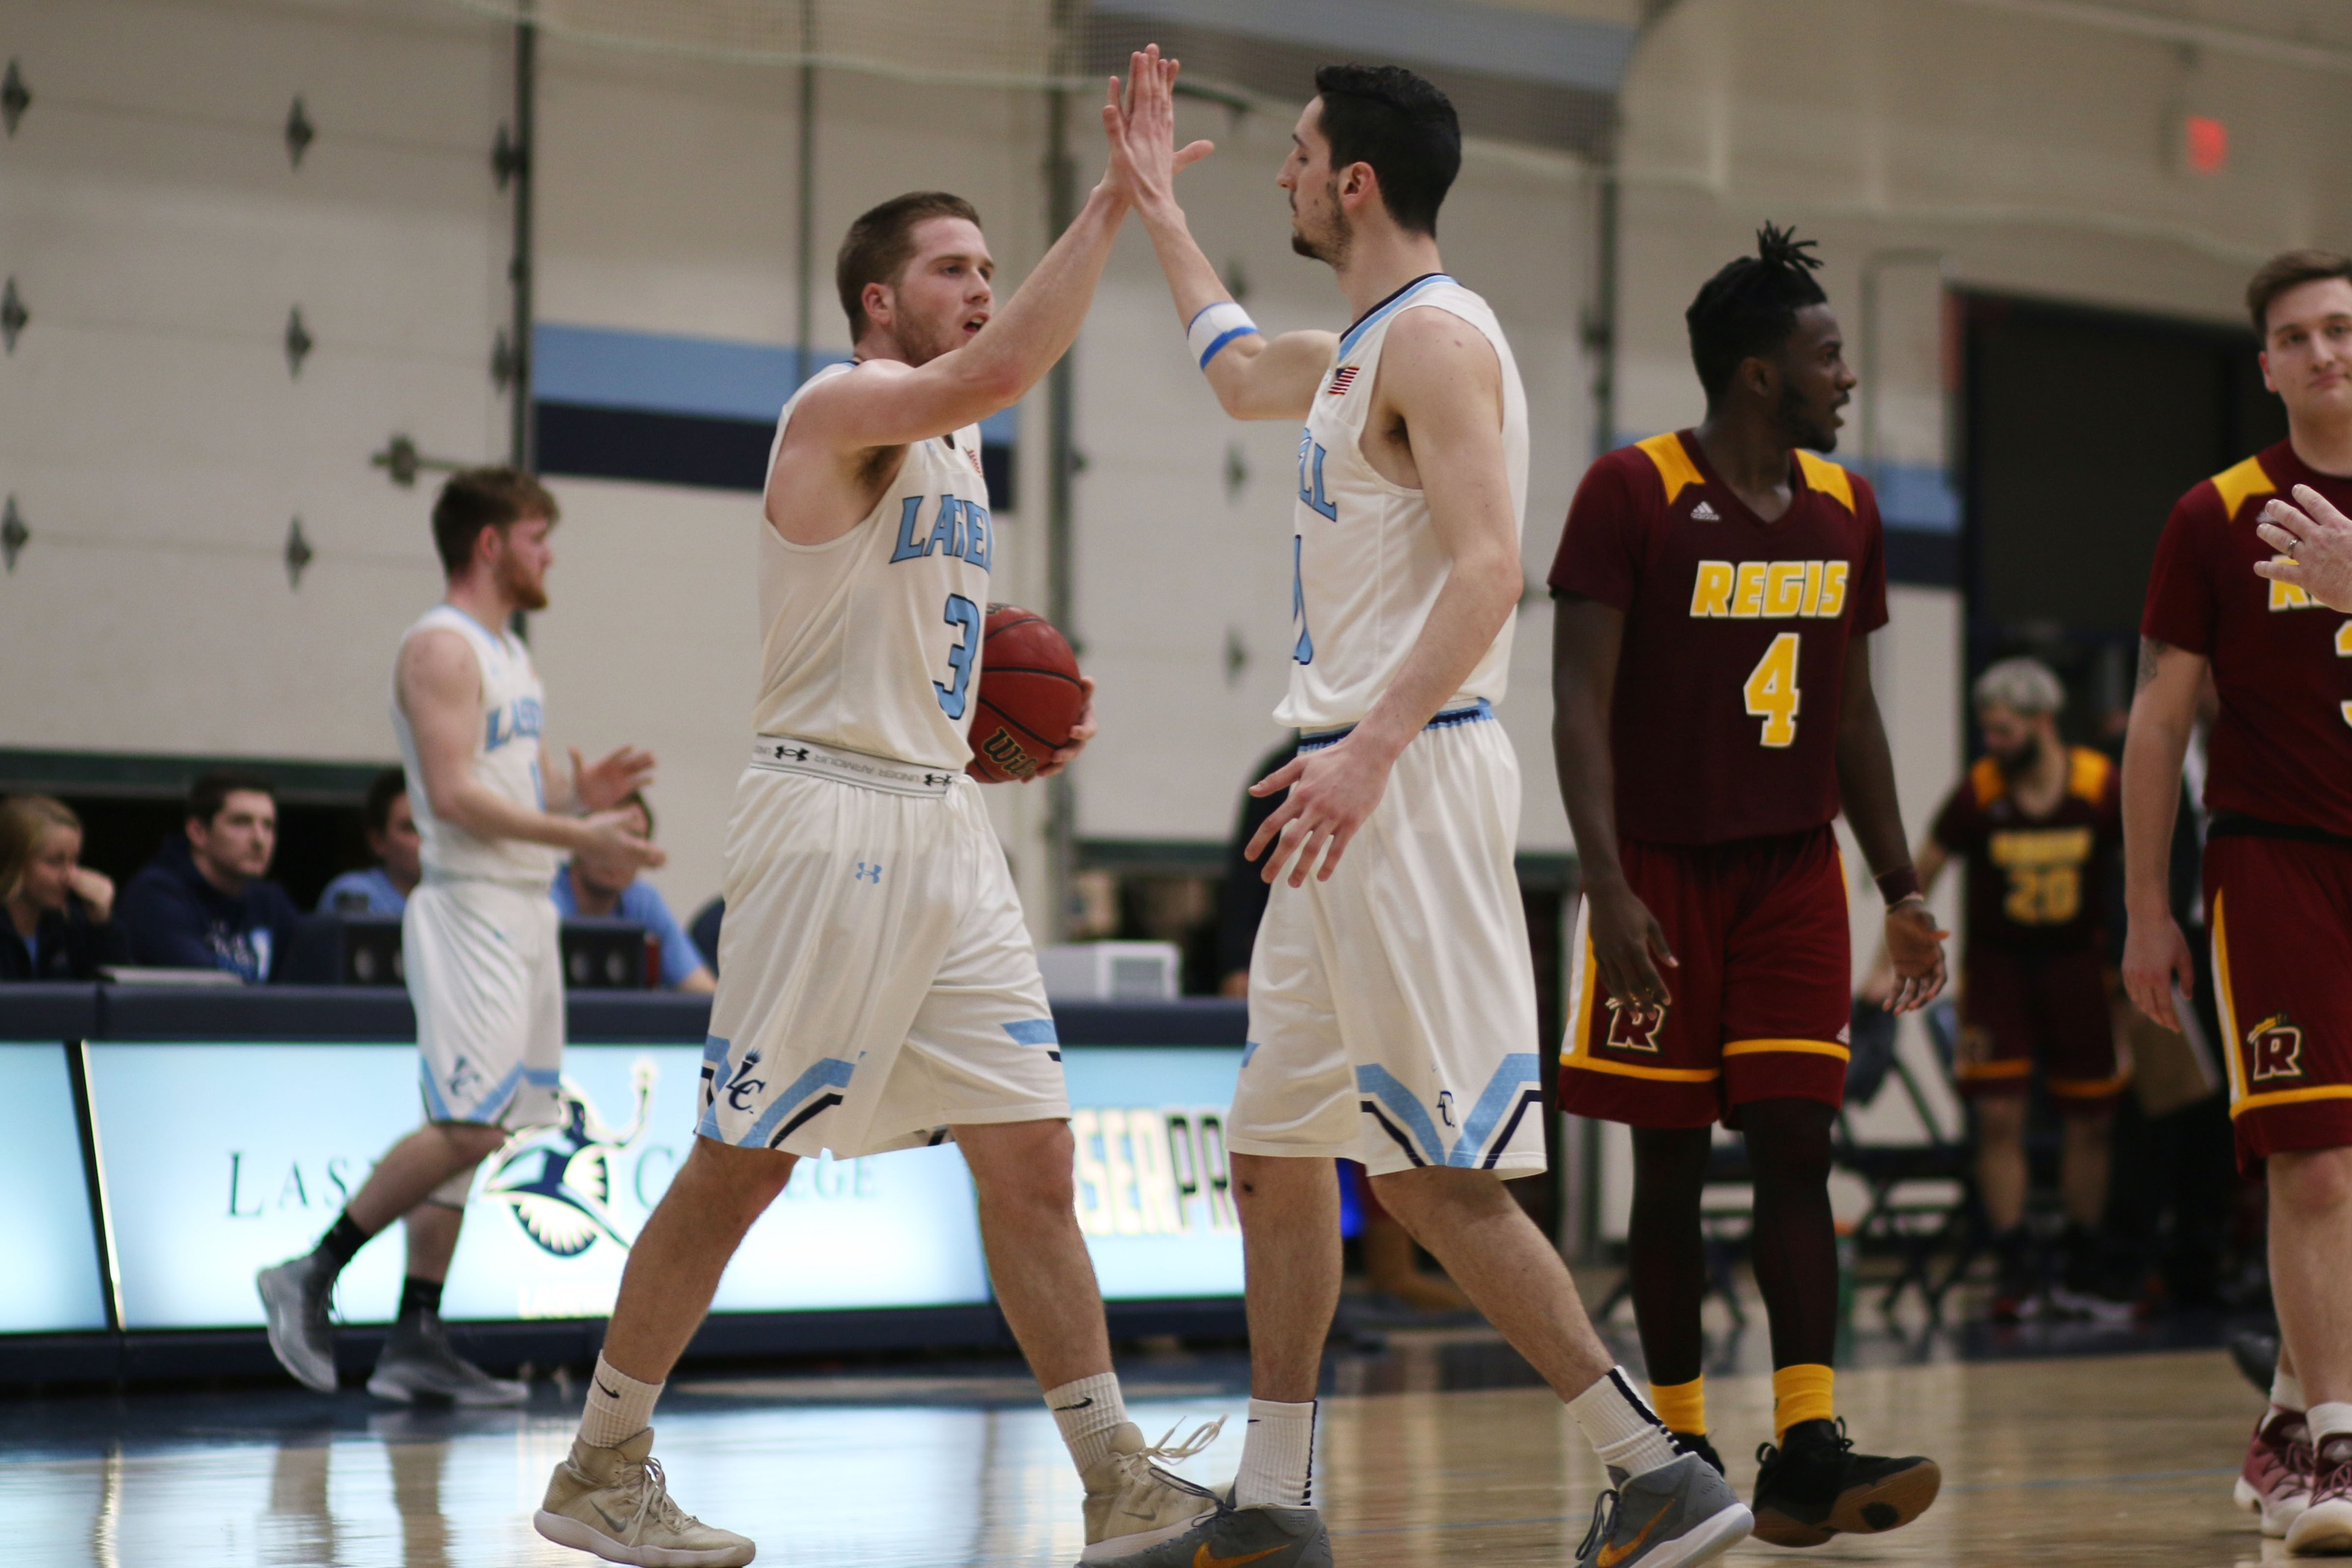 Lasell Men's Basketball rolls past Regis in GNAC playoffs